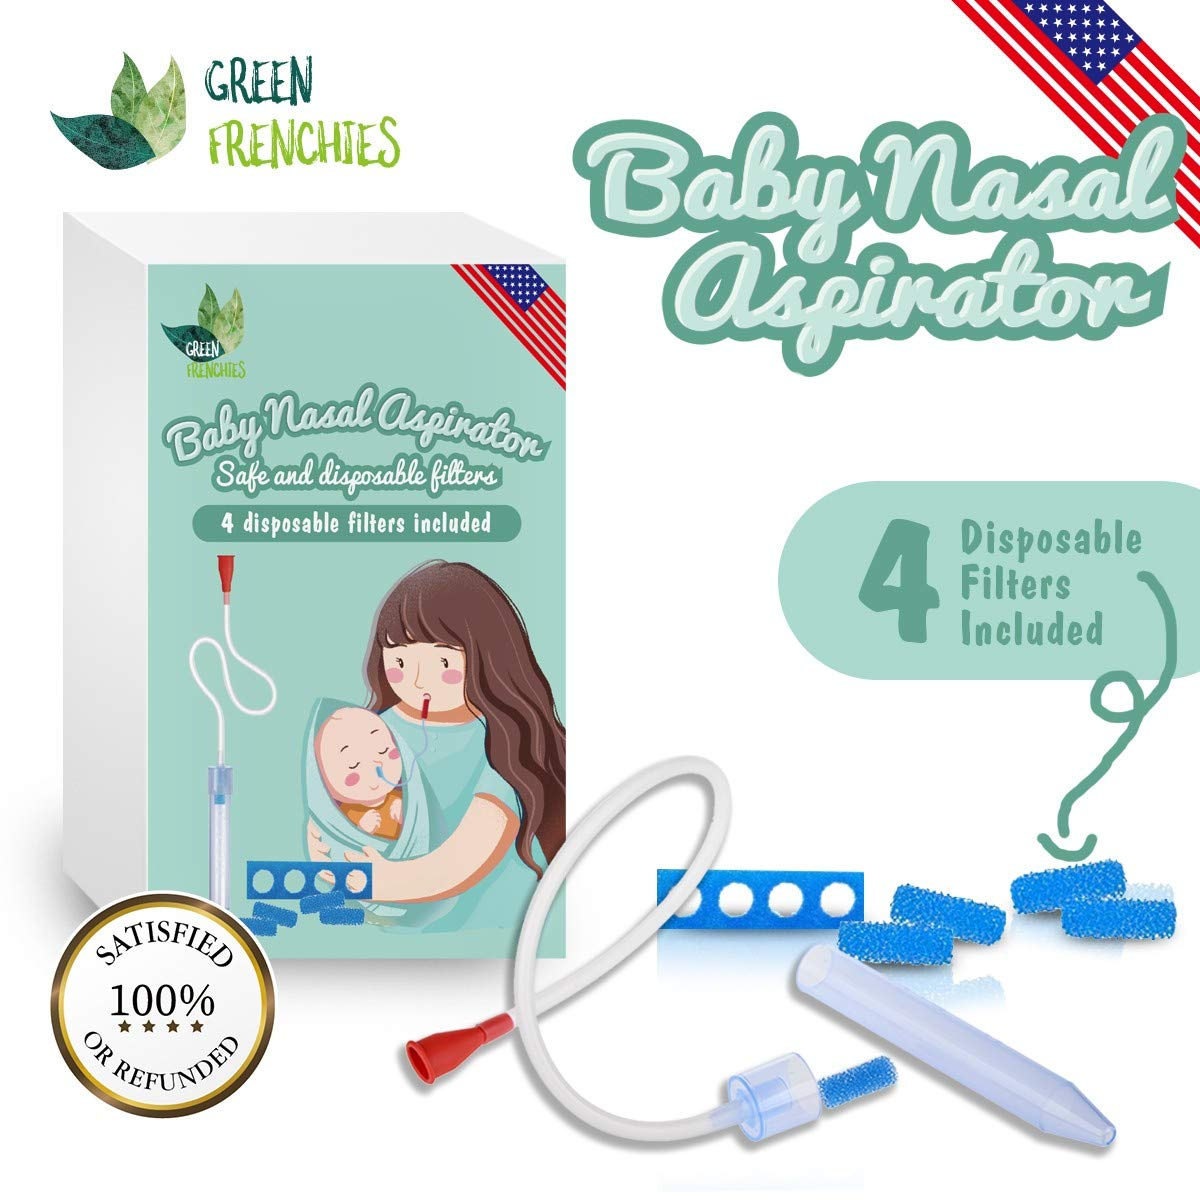 Nasal Aspirator - Baby Nasal Spray - Snot Sucker + 4 Filters by Green Frenchies